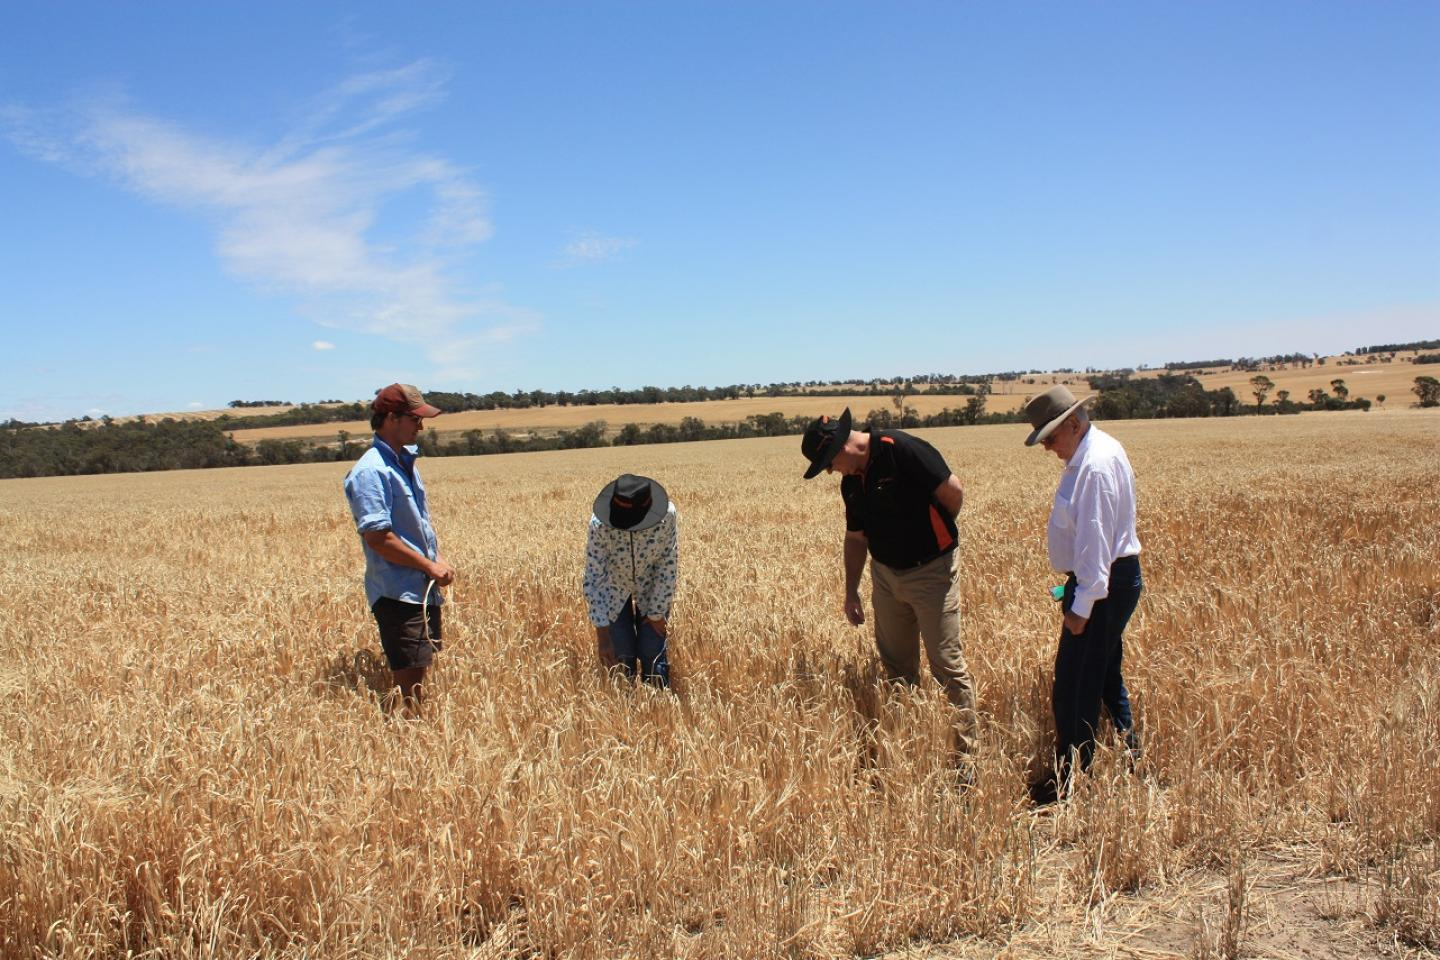 Cranbrook farmer Theo Cunningham (left), talks with Ausplow consultant Dr Margaret Roper, Ausplow General Manager Chris Farmer and Managing Director John Ryan AM in a freshly-harvested crop of Planet barley to examine the closeness of the roots to the previous year's row.